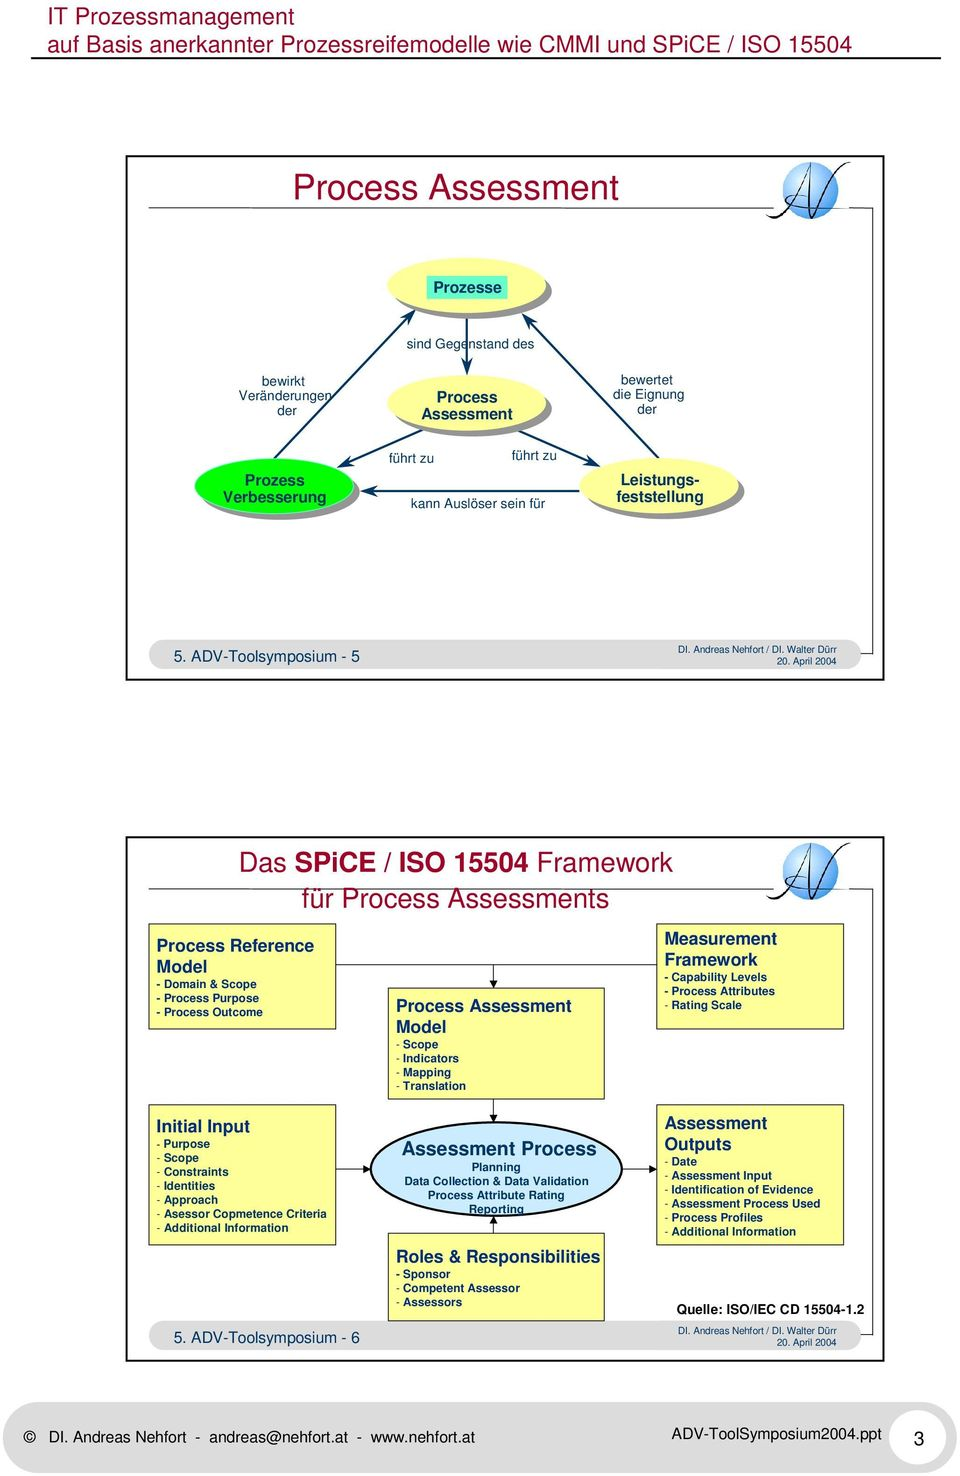 ADV-Toolsymposium - 5 Das SPiCE / ISO 15504 Framework für Process Assessments Process Reference Model - Domain & Scope - Process Purpose - Process Outcome Initial Input - Purpose - Scope -